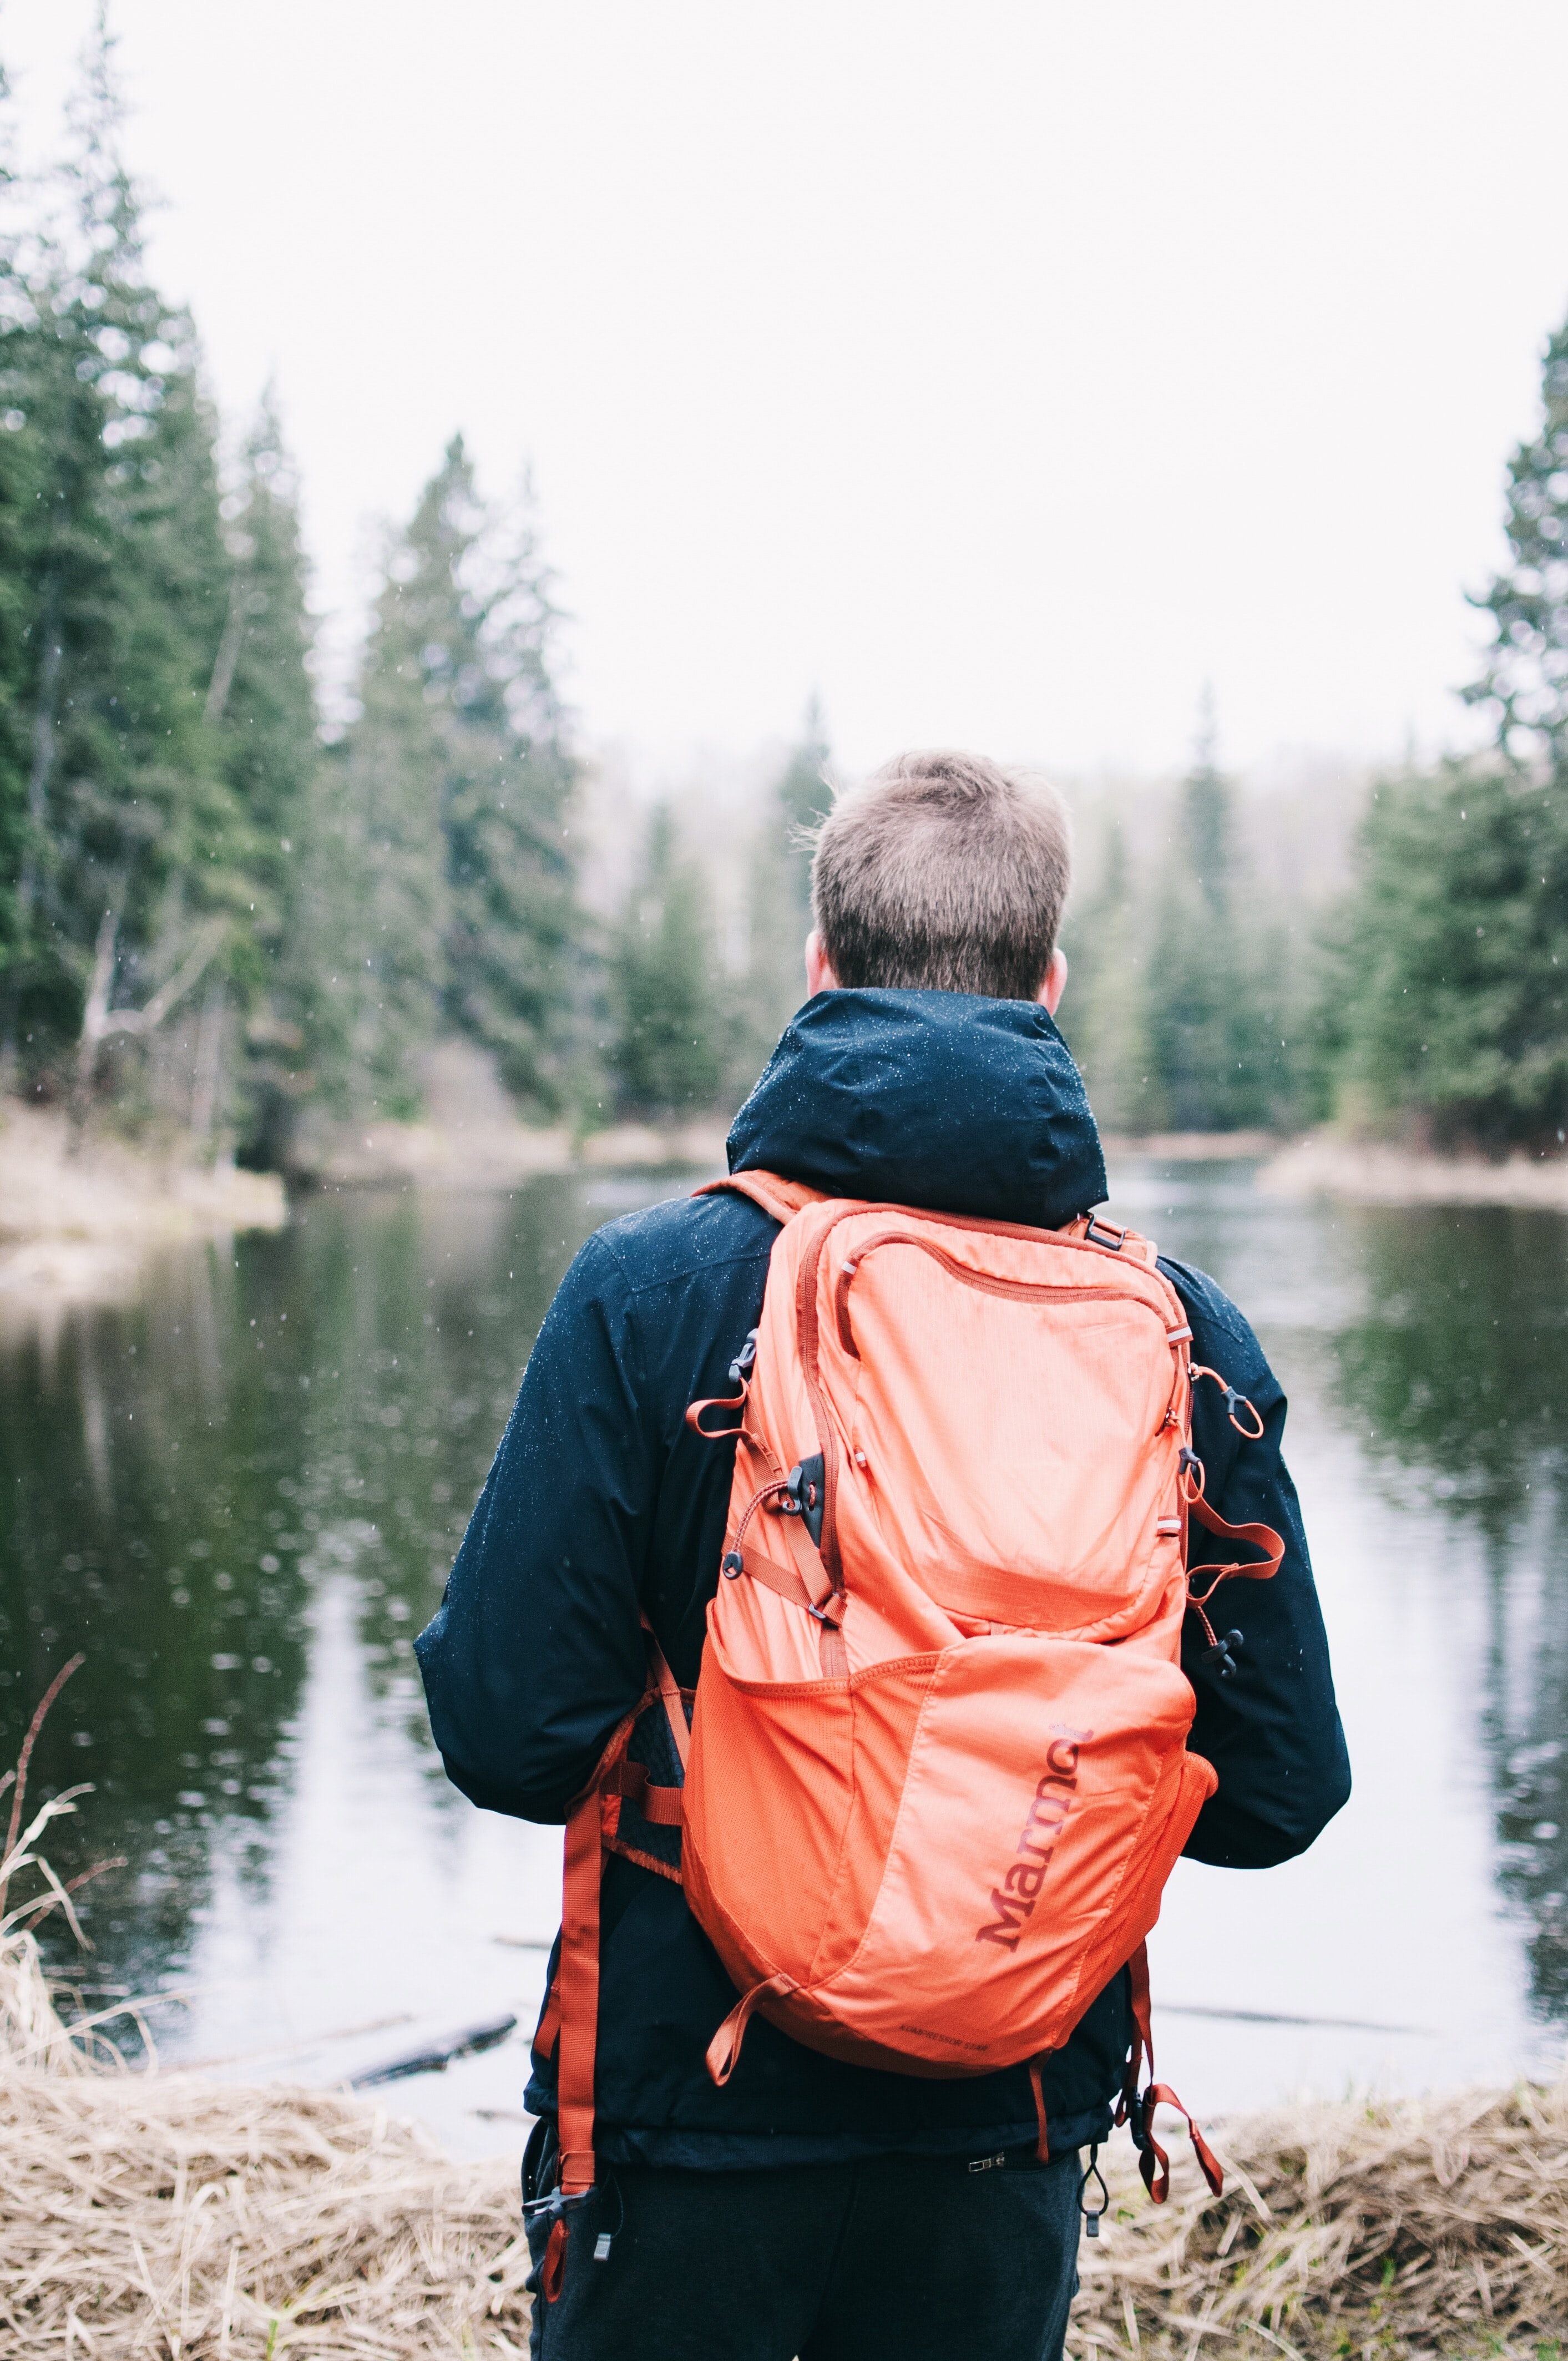 man wearing blue jacket and red backpack facing body of water